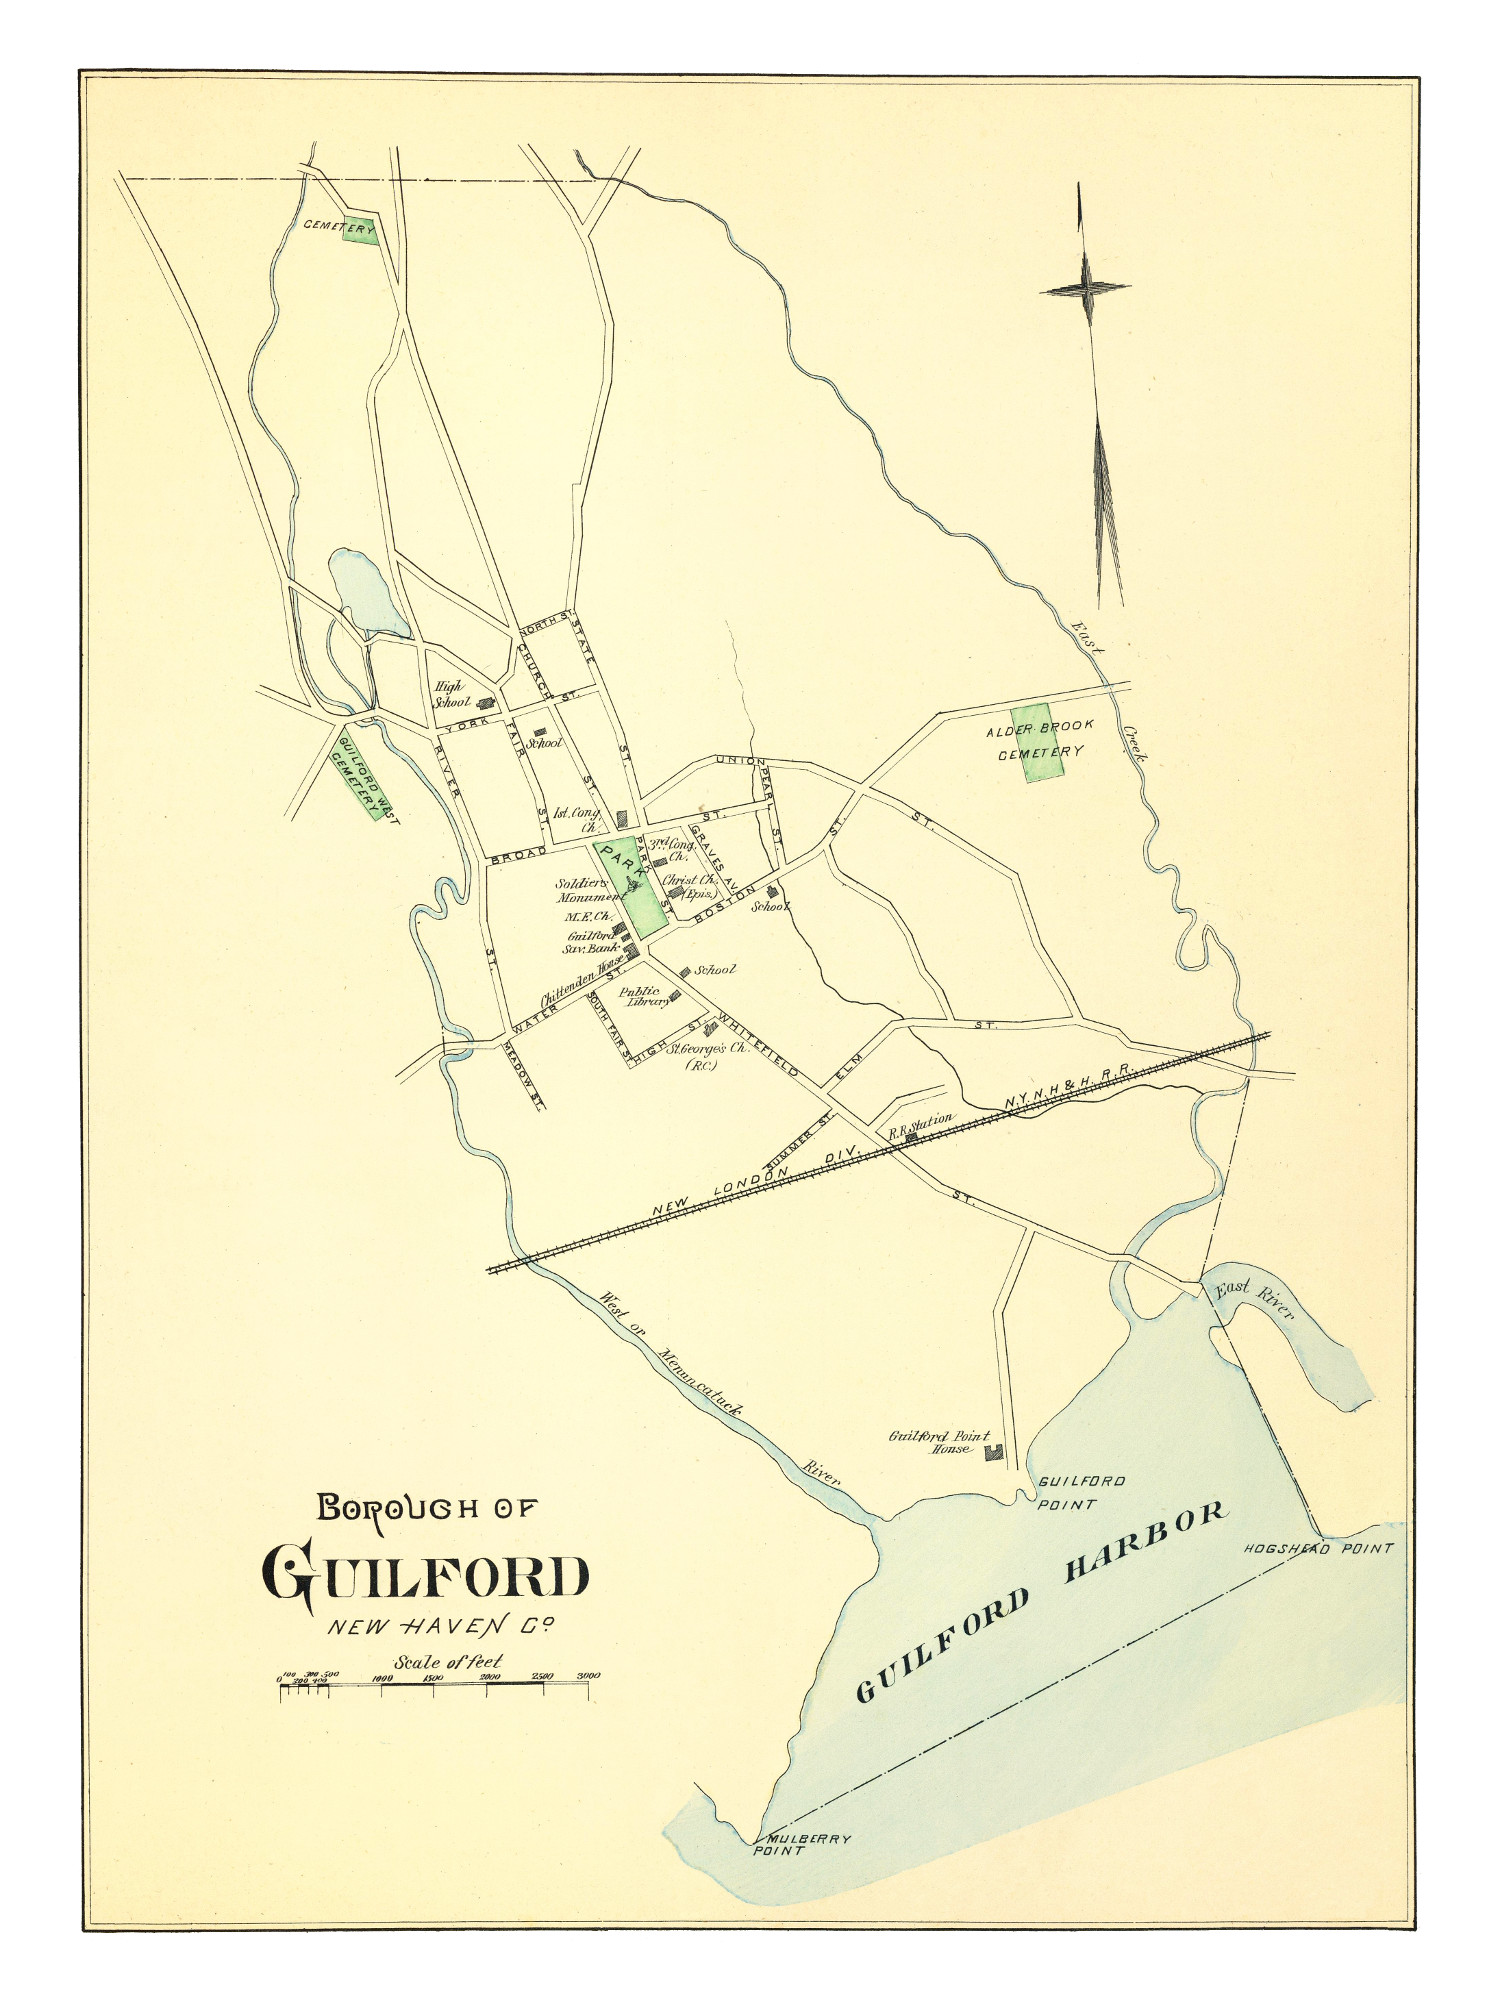 Guilford Connecticut Map From Old Vintage Map Of Guilford - Old map reproductions